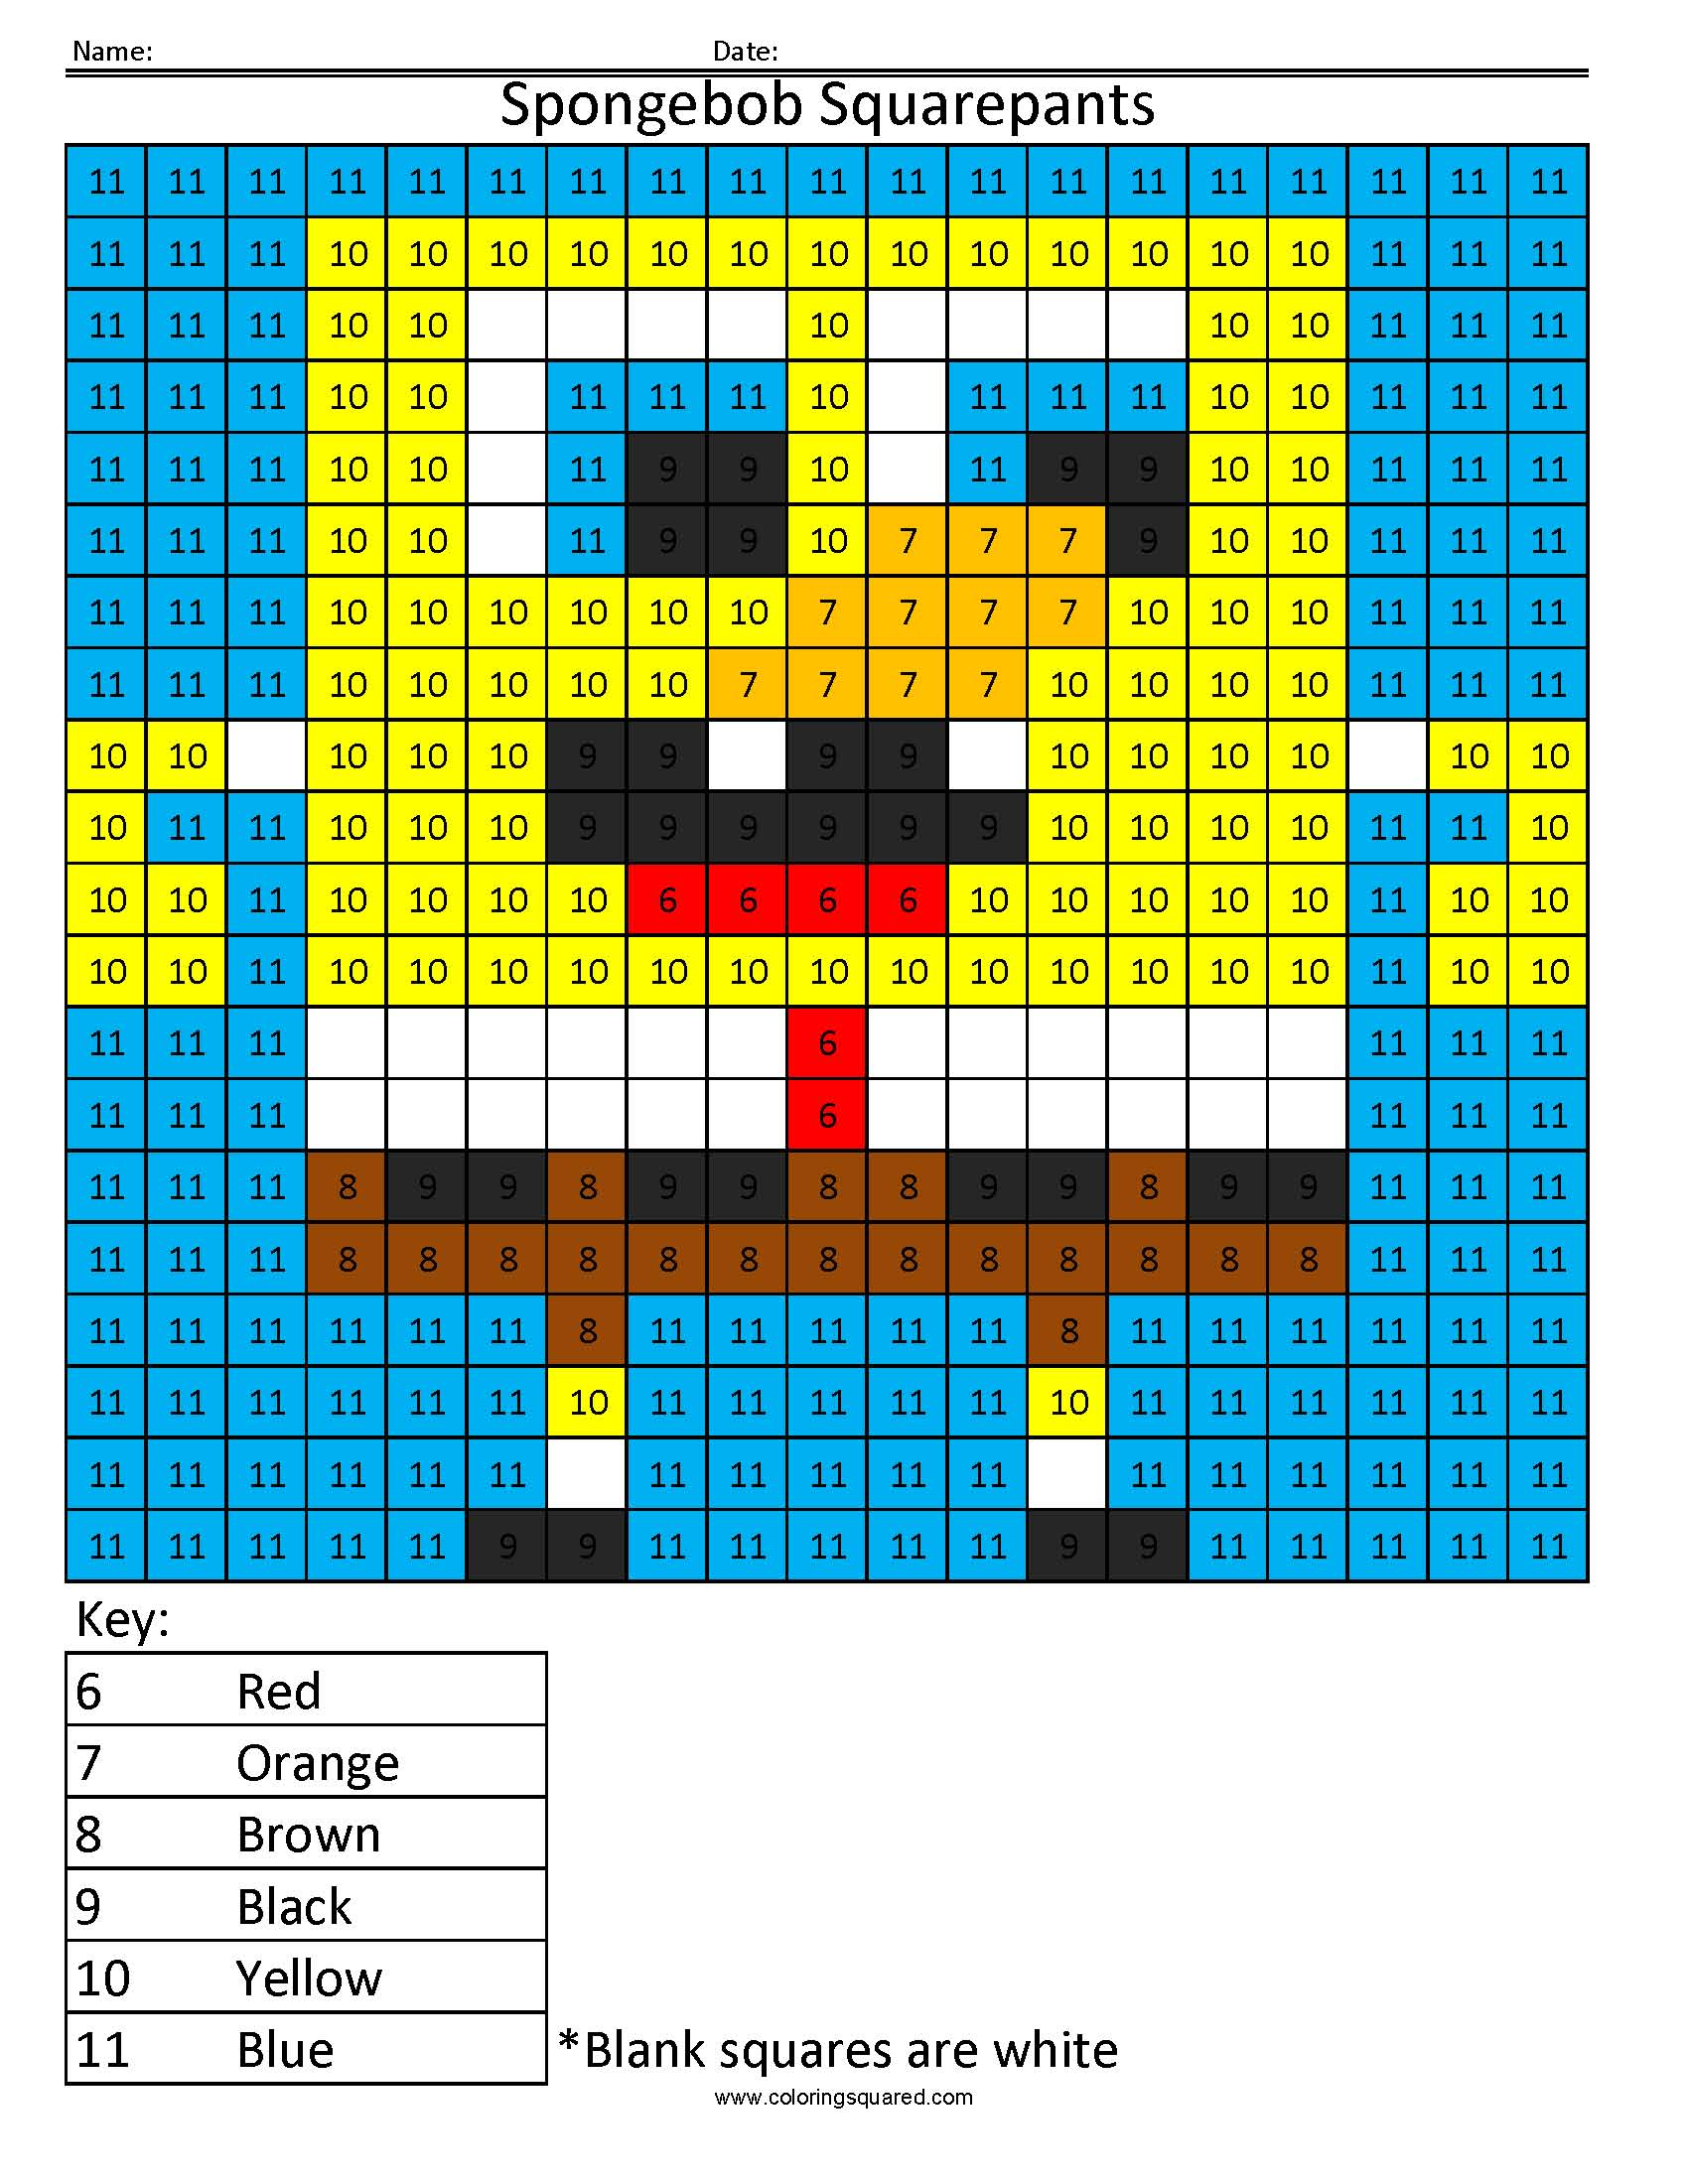 Spongebob Squarepants- Color by Number – Coloring Squared